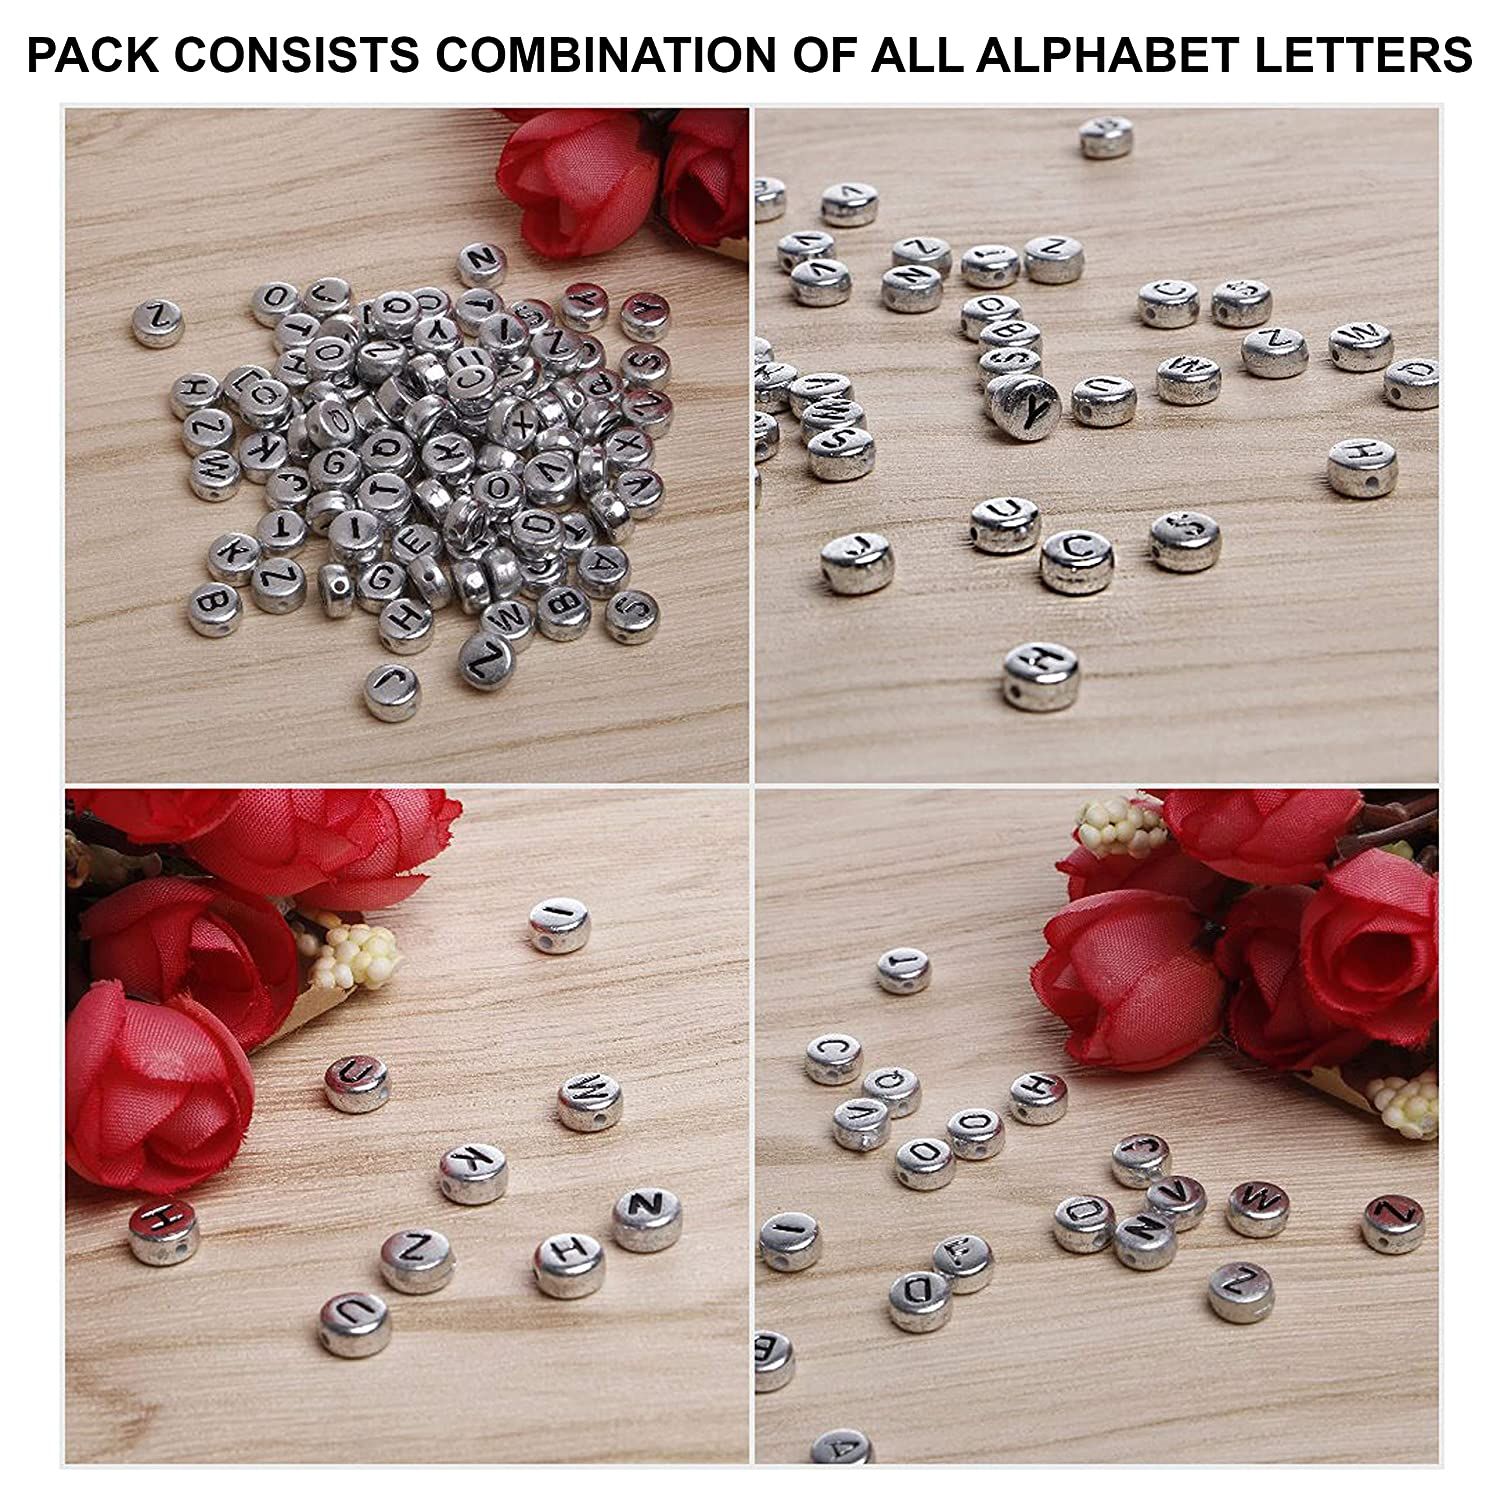 Beads Jewelry & Accessories Qualified Free Shipping 300pcs 6*6mm Big Hole Cube Acrylic Letter S Beads Gold Color Plastic Alphabet Spacer Beads Fit Ornament Bracelets